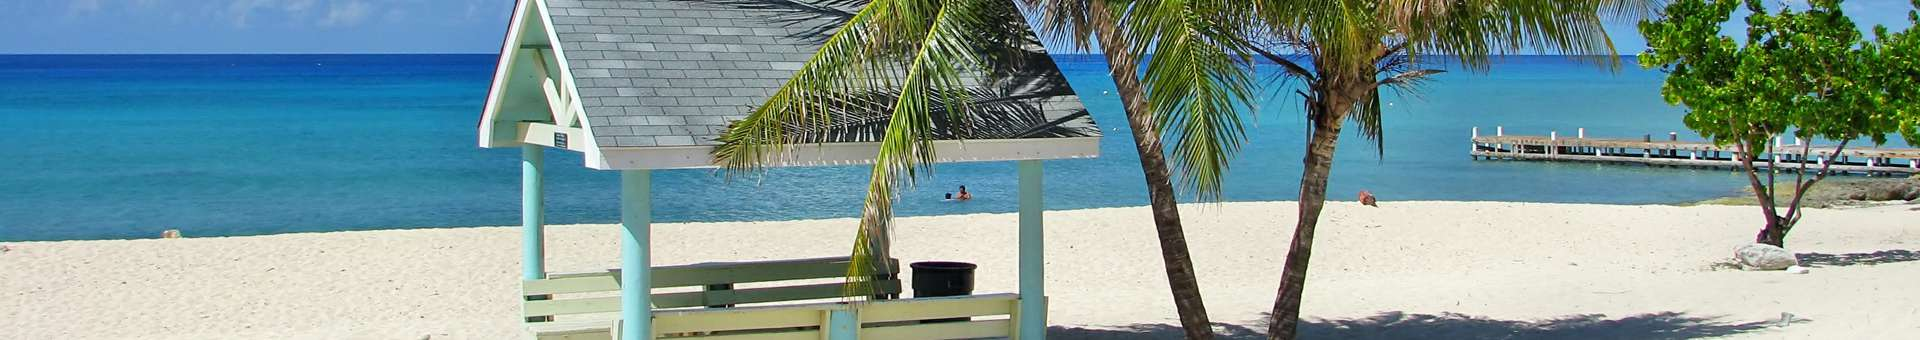 Search Whois information of domain names in Cayman Island